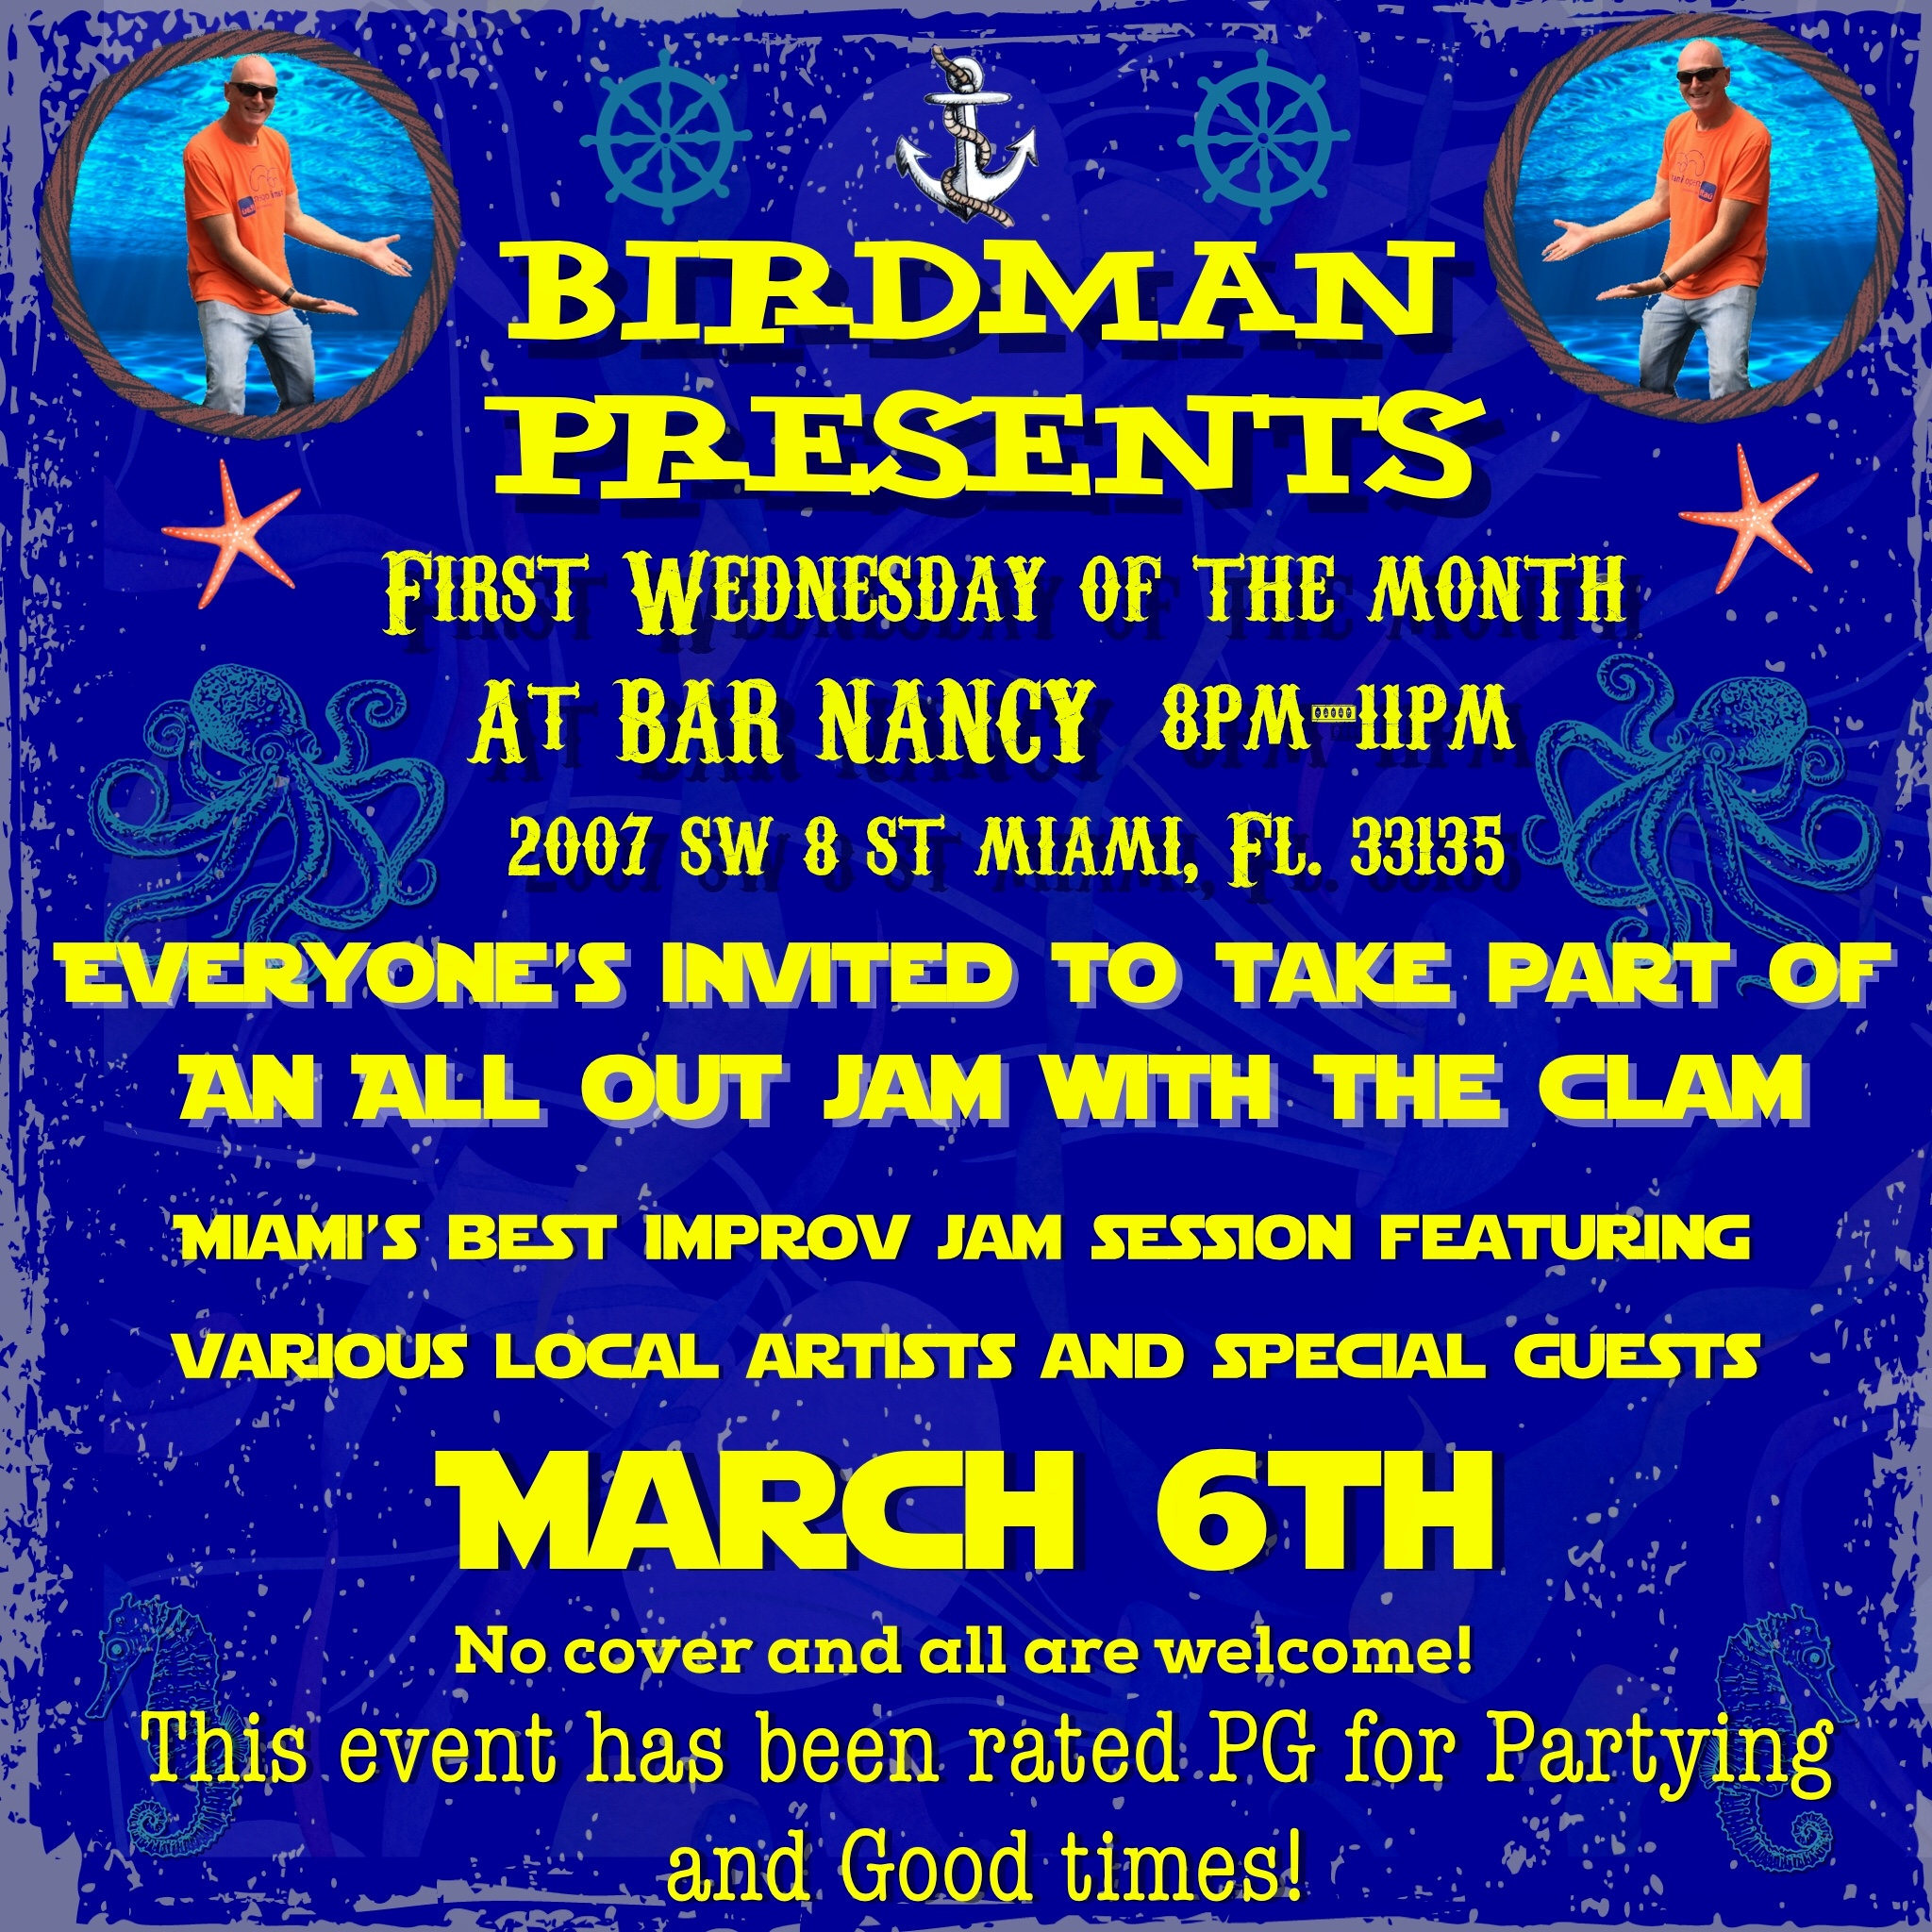 BIRDMAN presents - Every 1st Wednesday of the month - March 6th - No Cover - Various Local Improv. 8PM - 11PM @ Bar Nancy